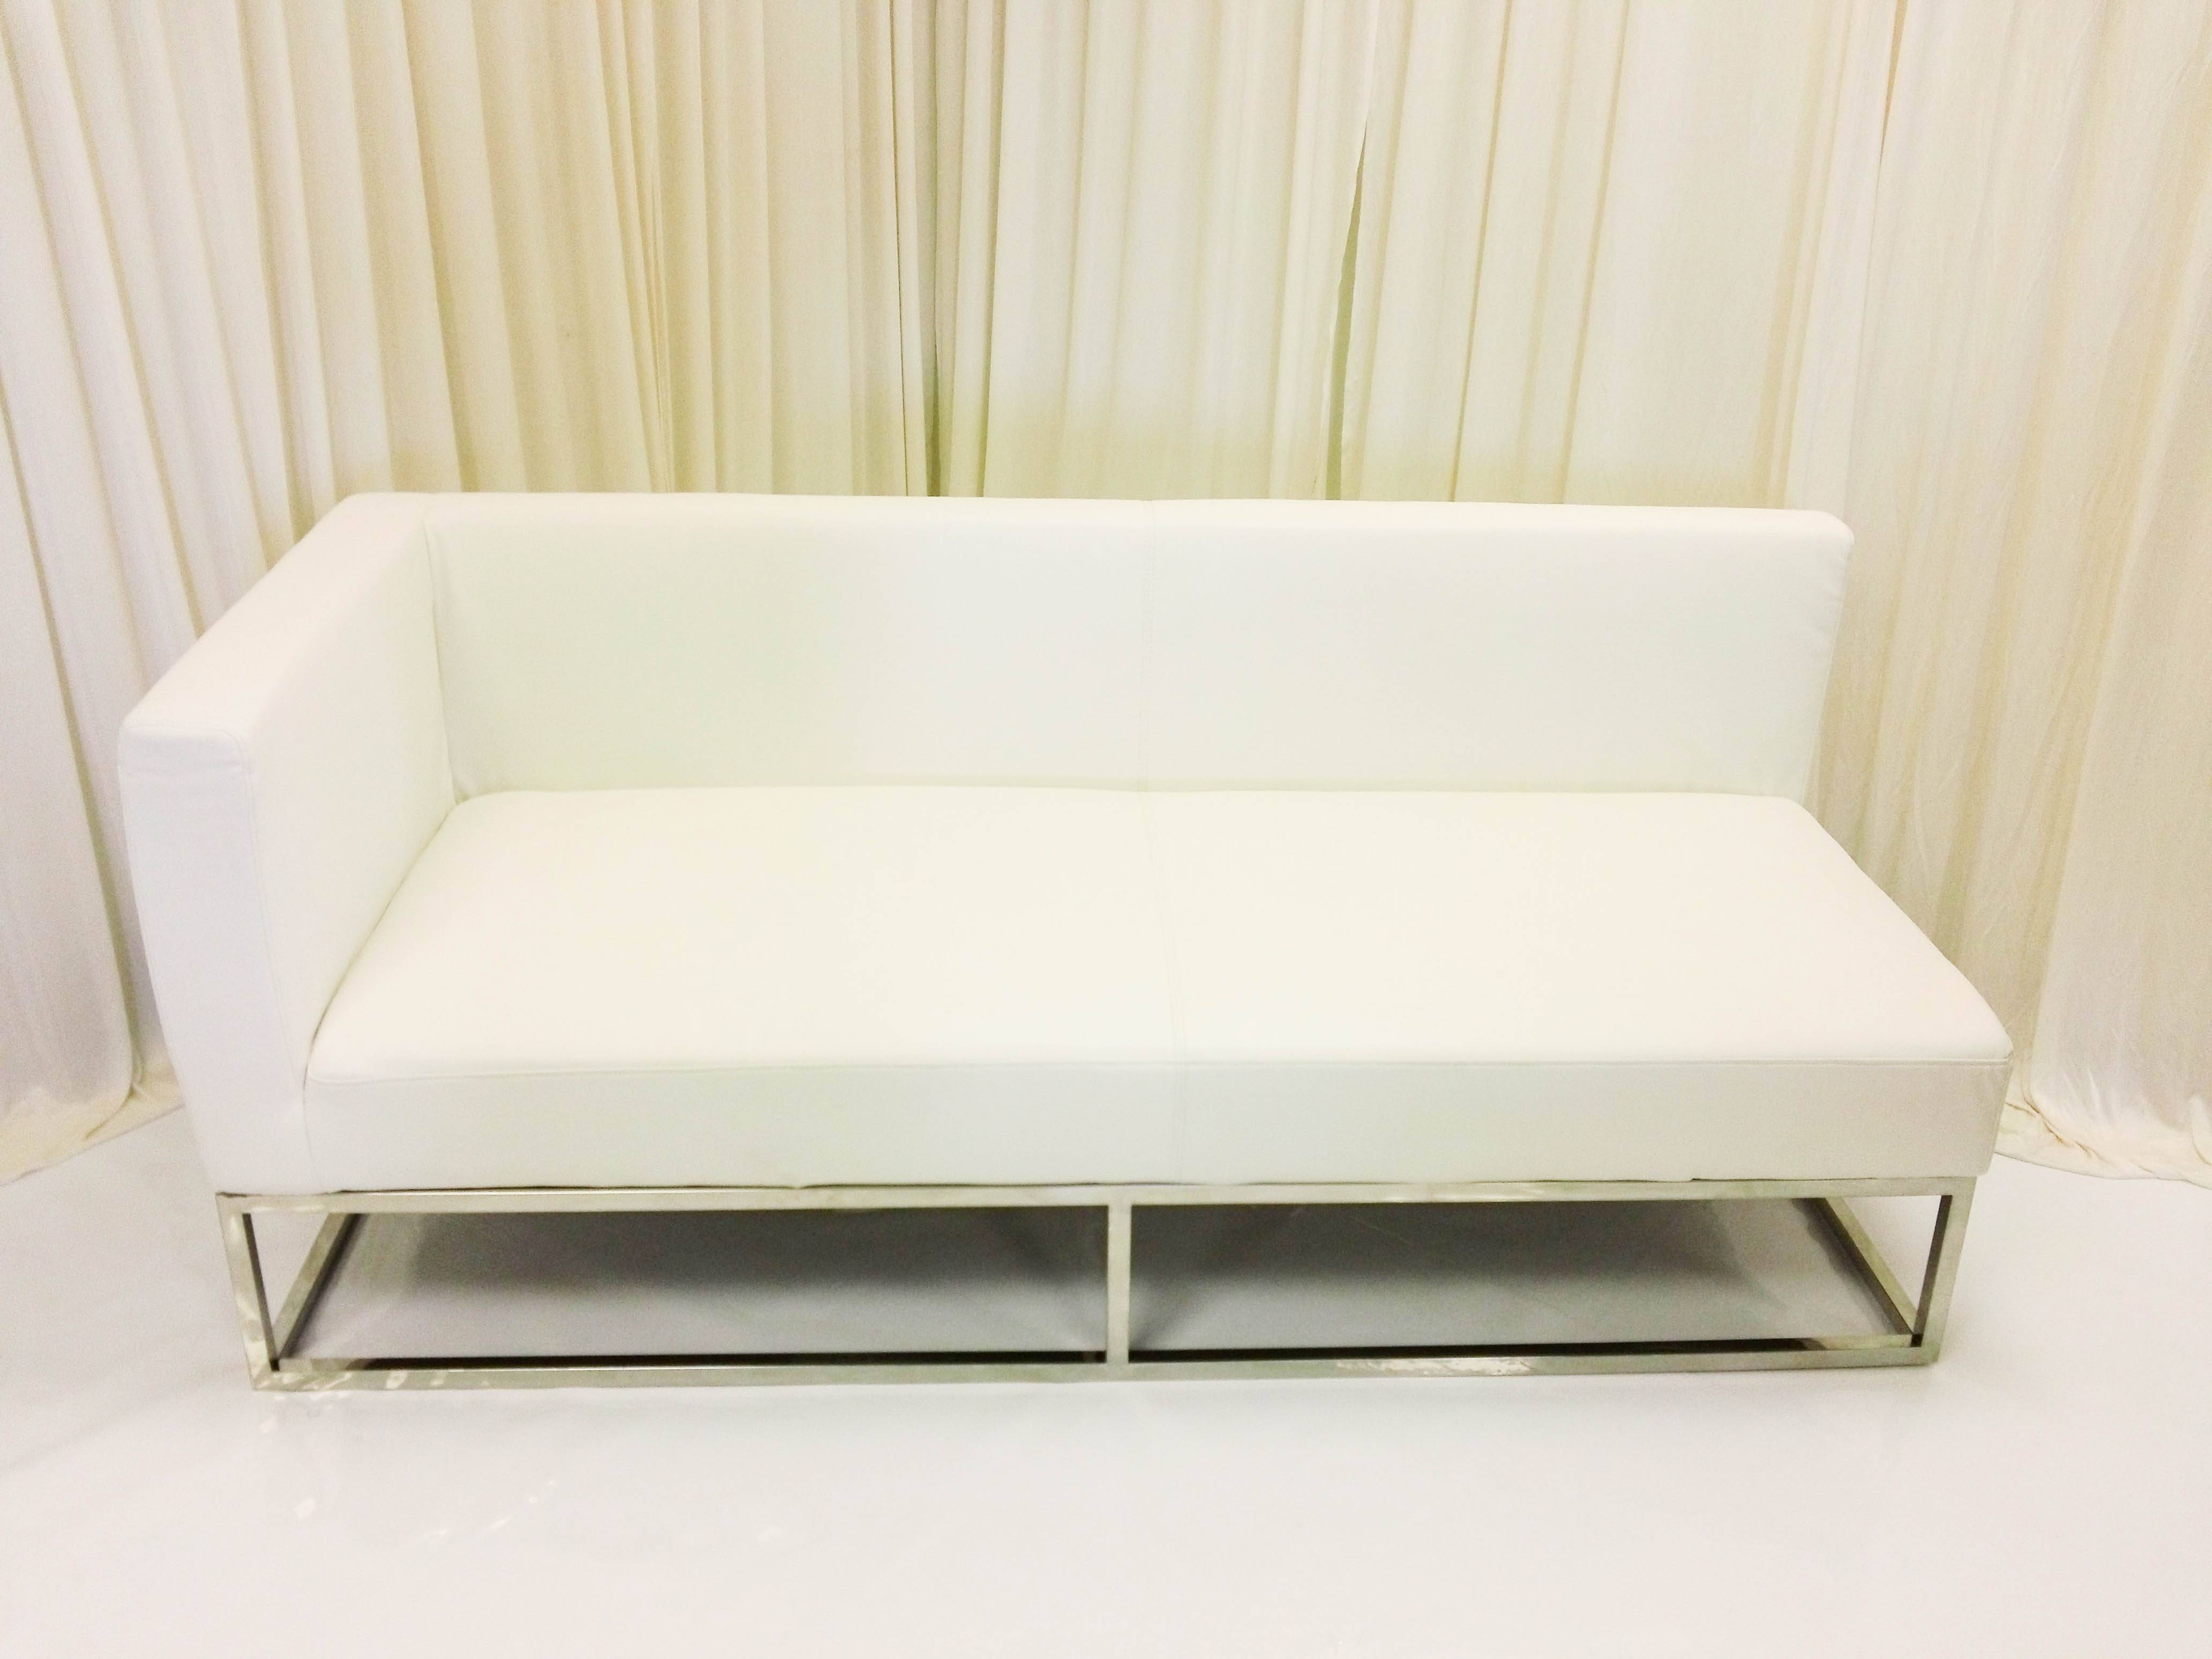 Modern-White-Leather-Right-Arm-Bench-Sofa-Modern-Event-Rental-Modern-Leather -Loveseat-5F7461A447A1062D regarding Leather Bench Sofas (Image 20 of 30)